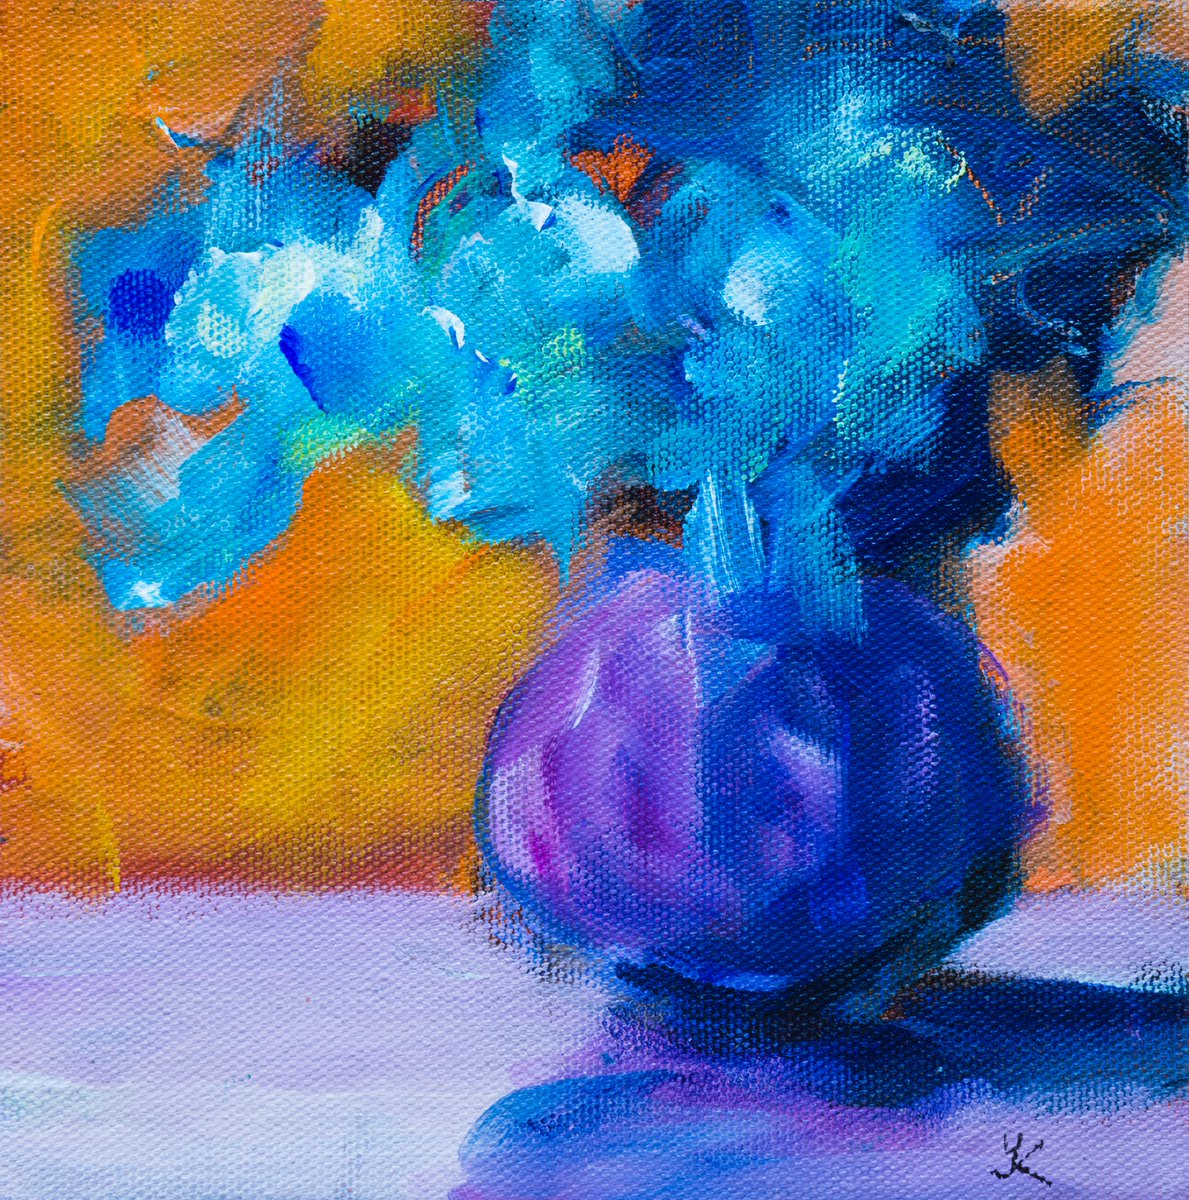 Blue flowers new paintinghttps://www.dailypaintworks.com/fineart/yulia-kazansky/blue-flowers/786390 … #art #fauvism #flowers